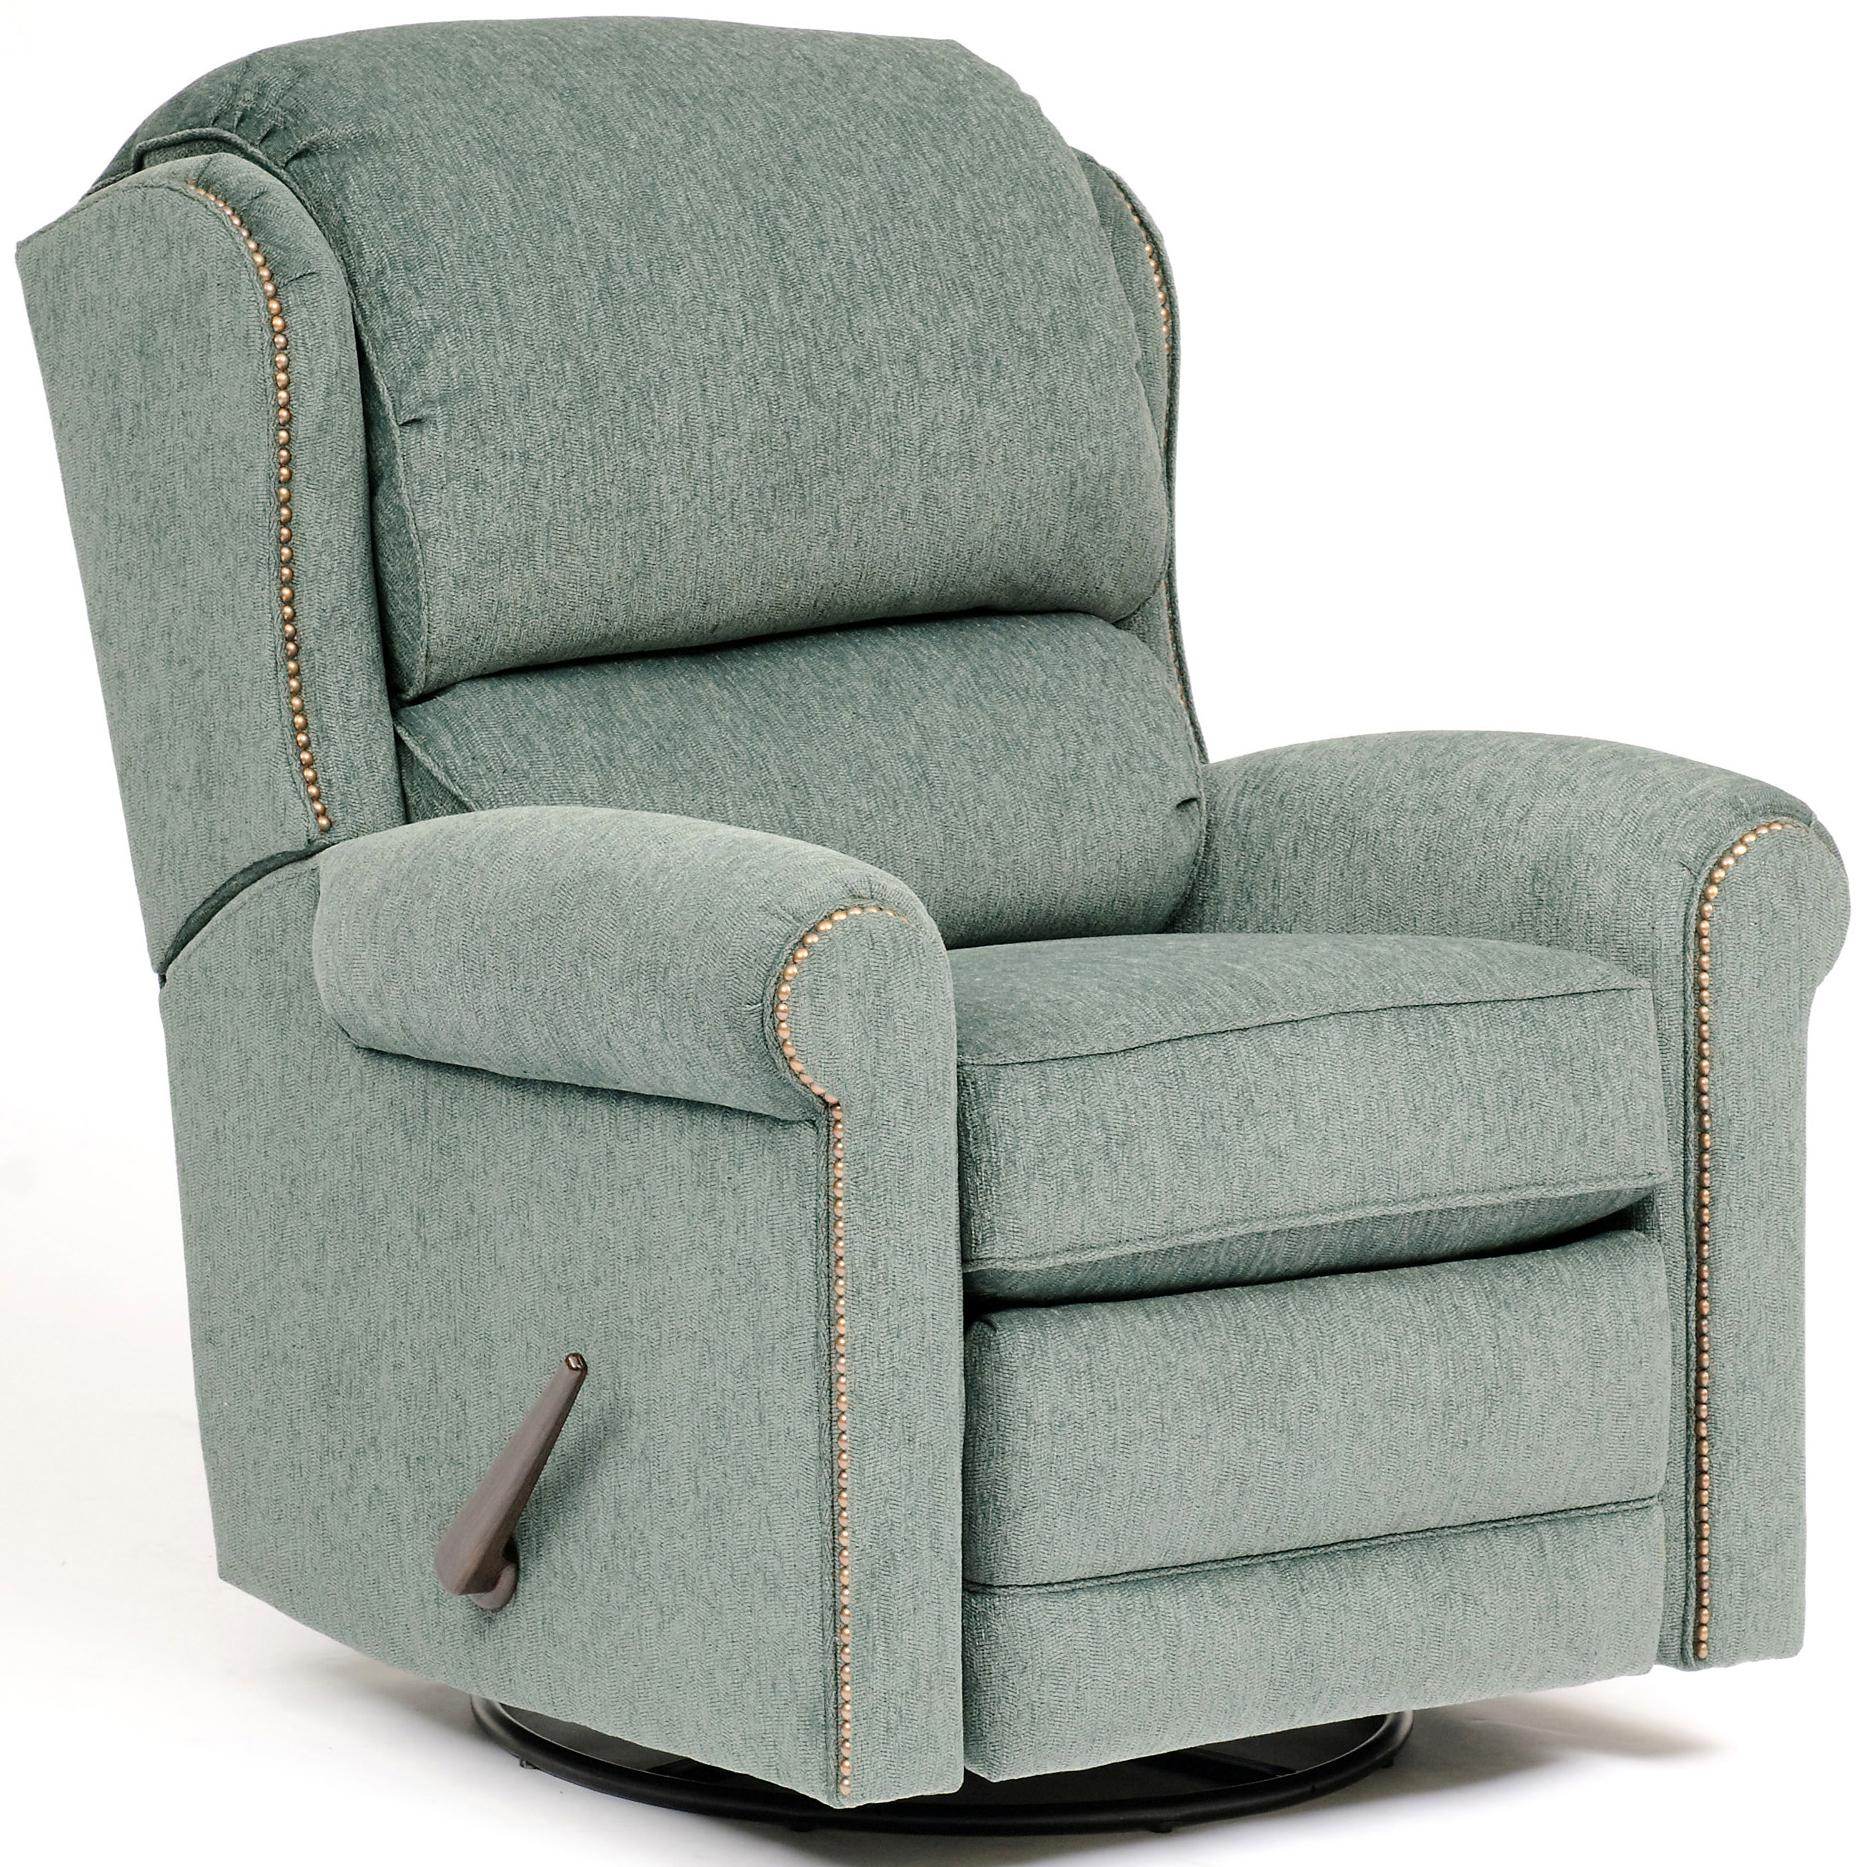 720 Casual Recliner by Smith Brothers at Saugerties Furniture Mart